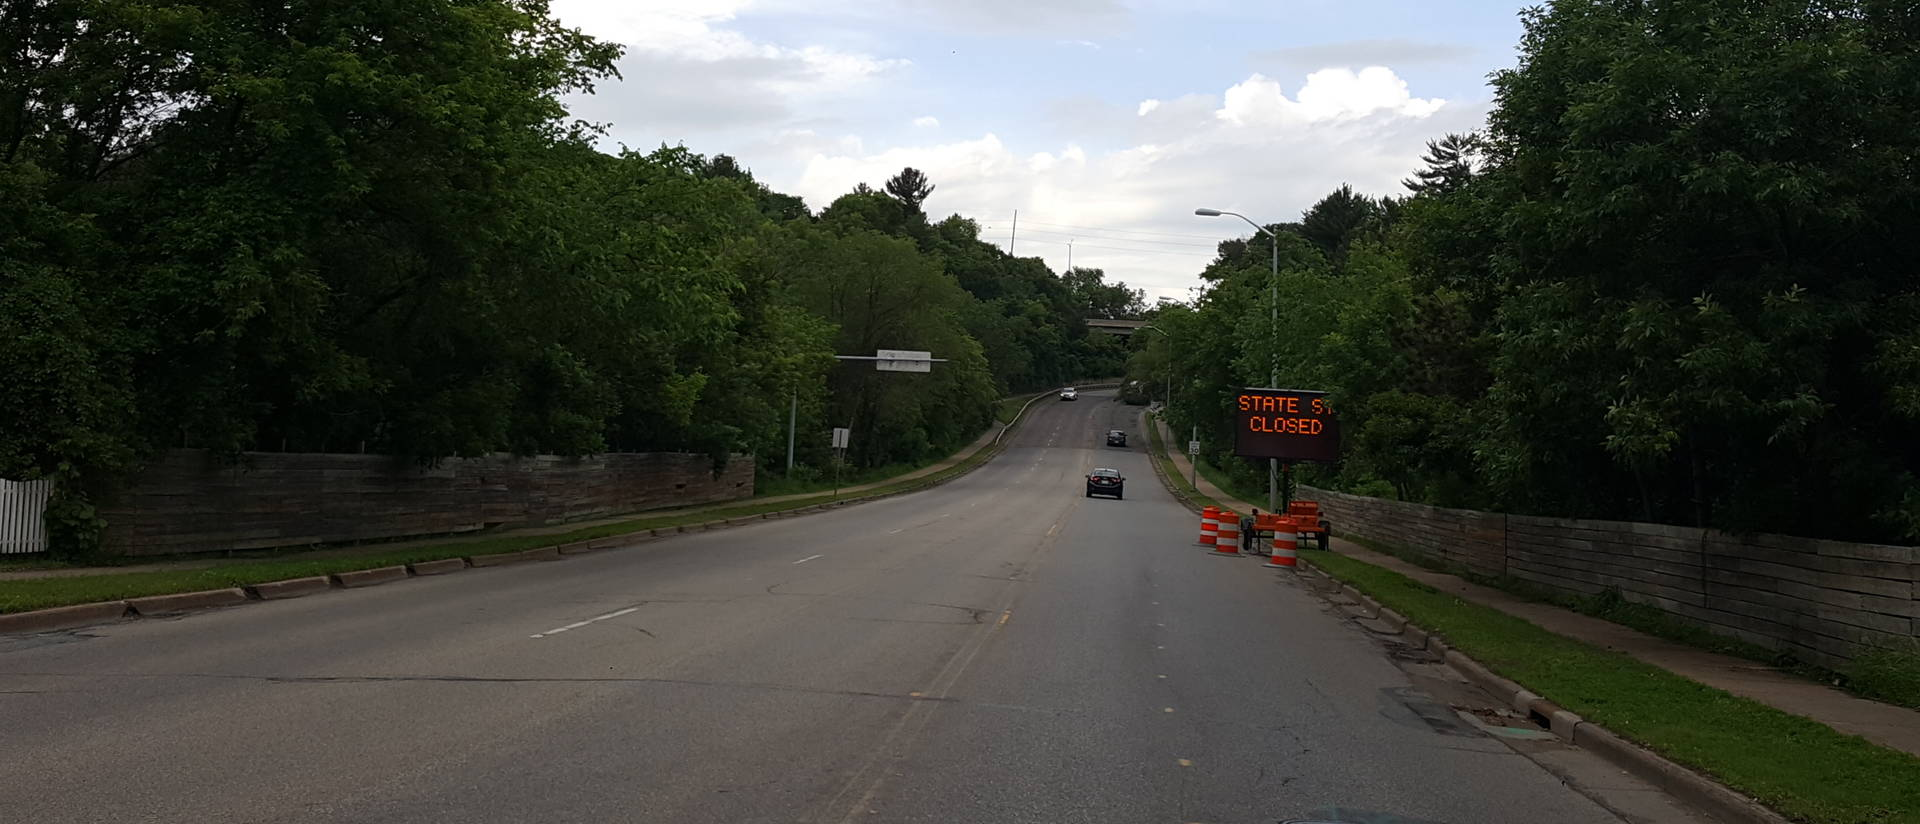 State Street hill near UW-Eau Claire campus